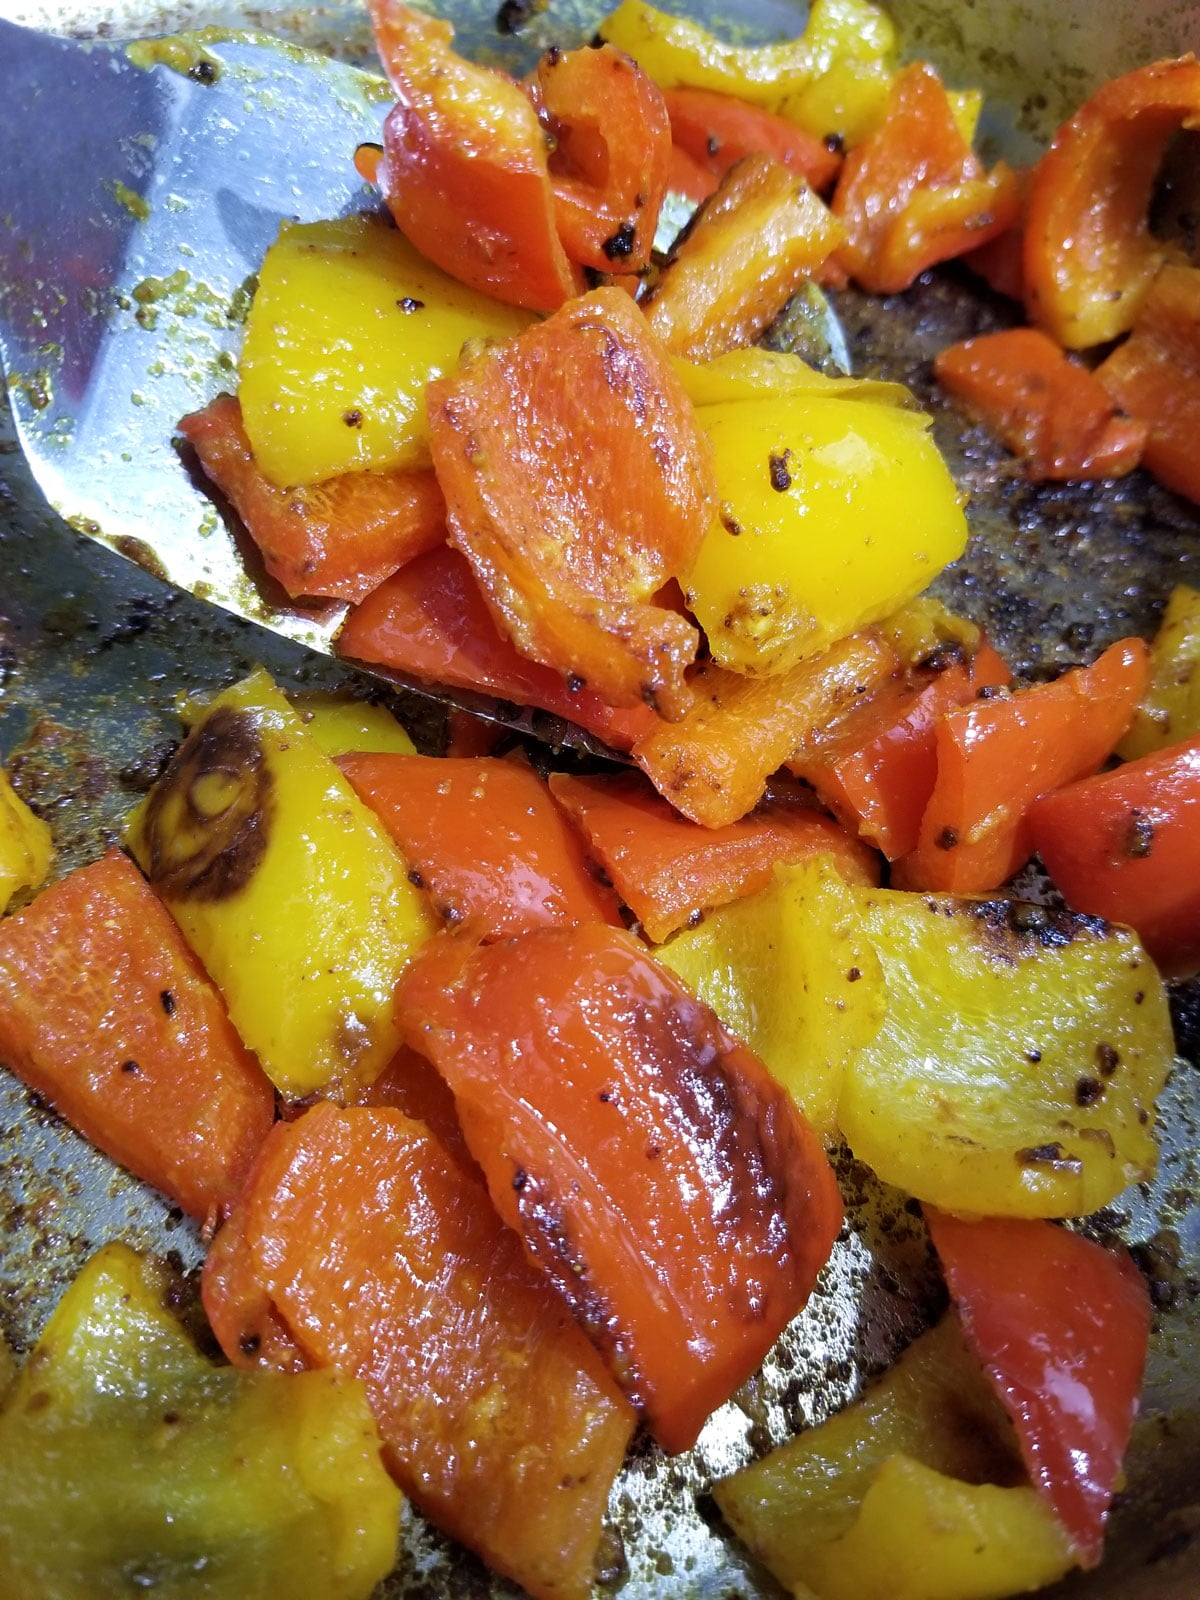 colorful vegetable stir fry with bell peppers